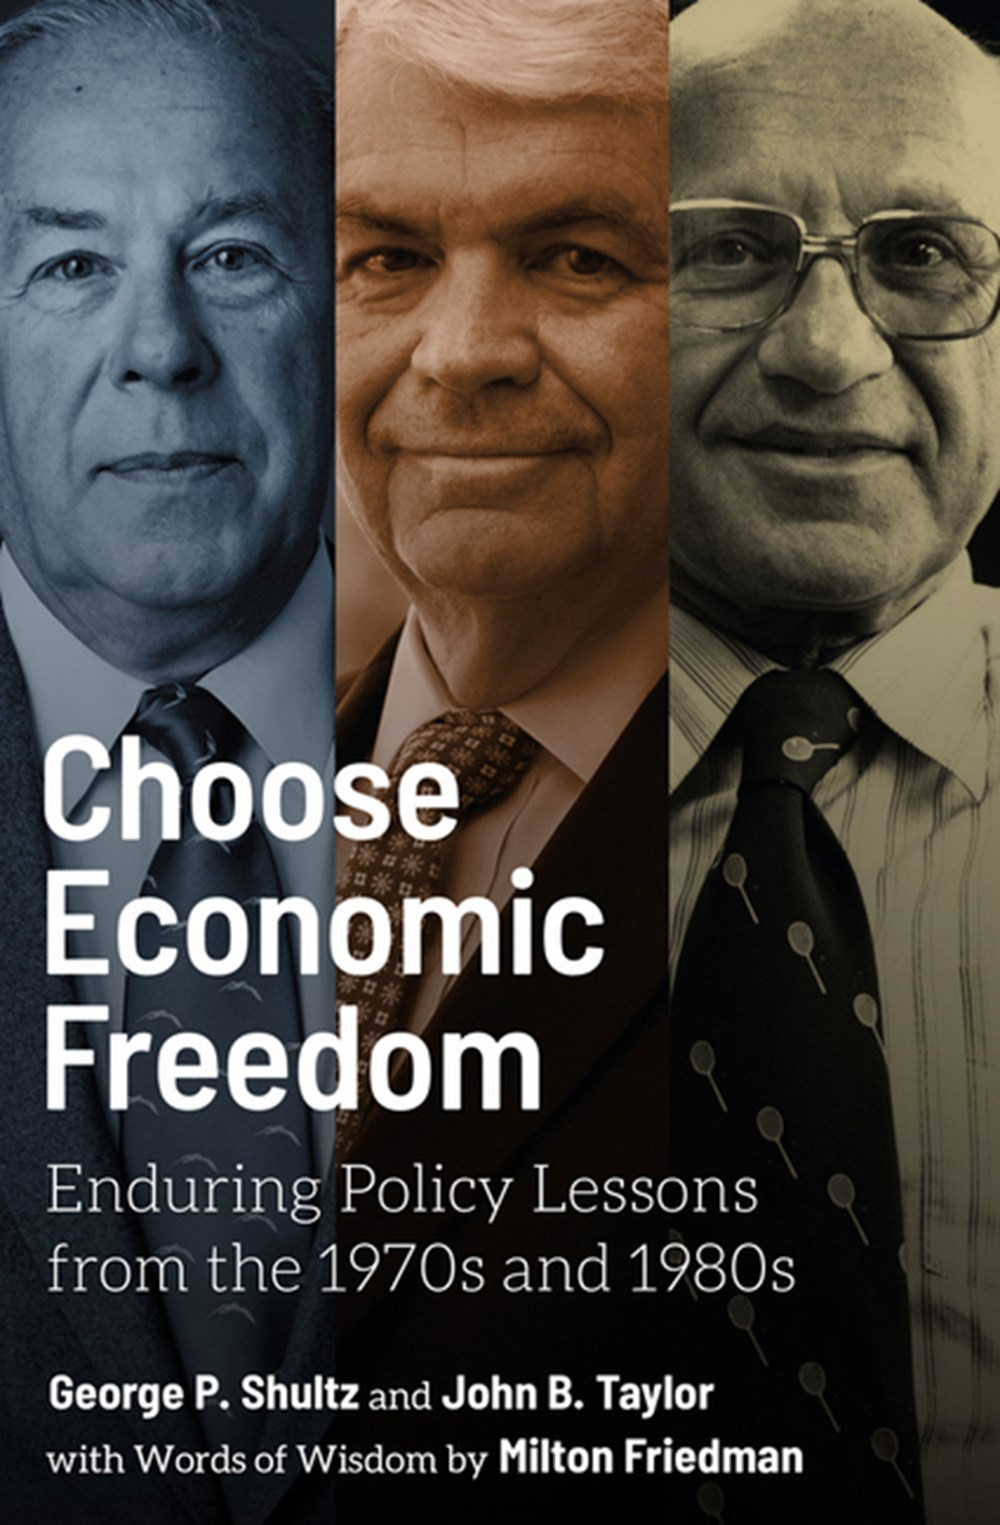 Choose Economic Freedom Enduring Policy Lessons from the 1970s and 1980s